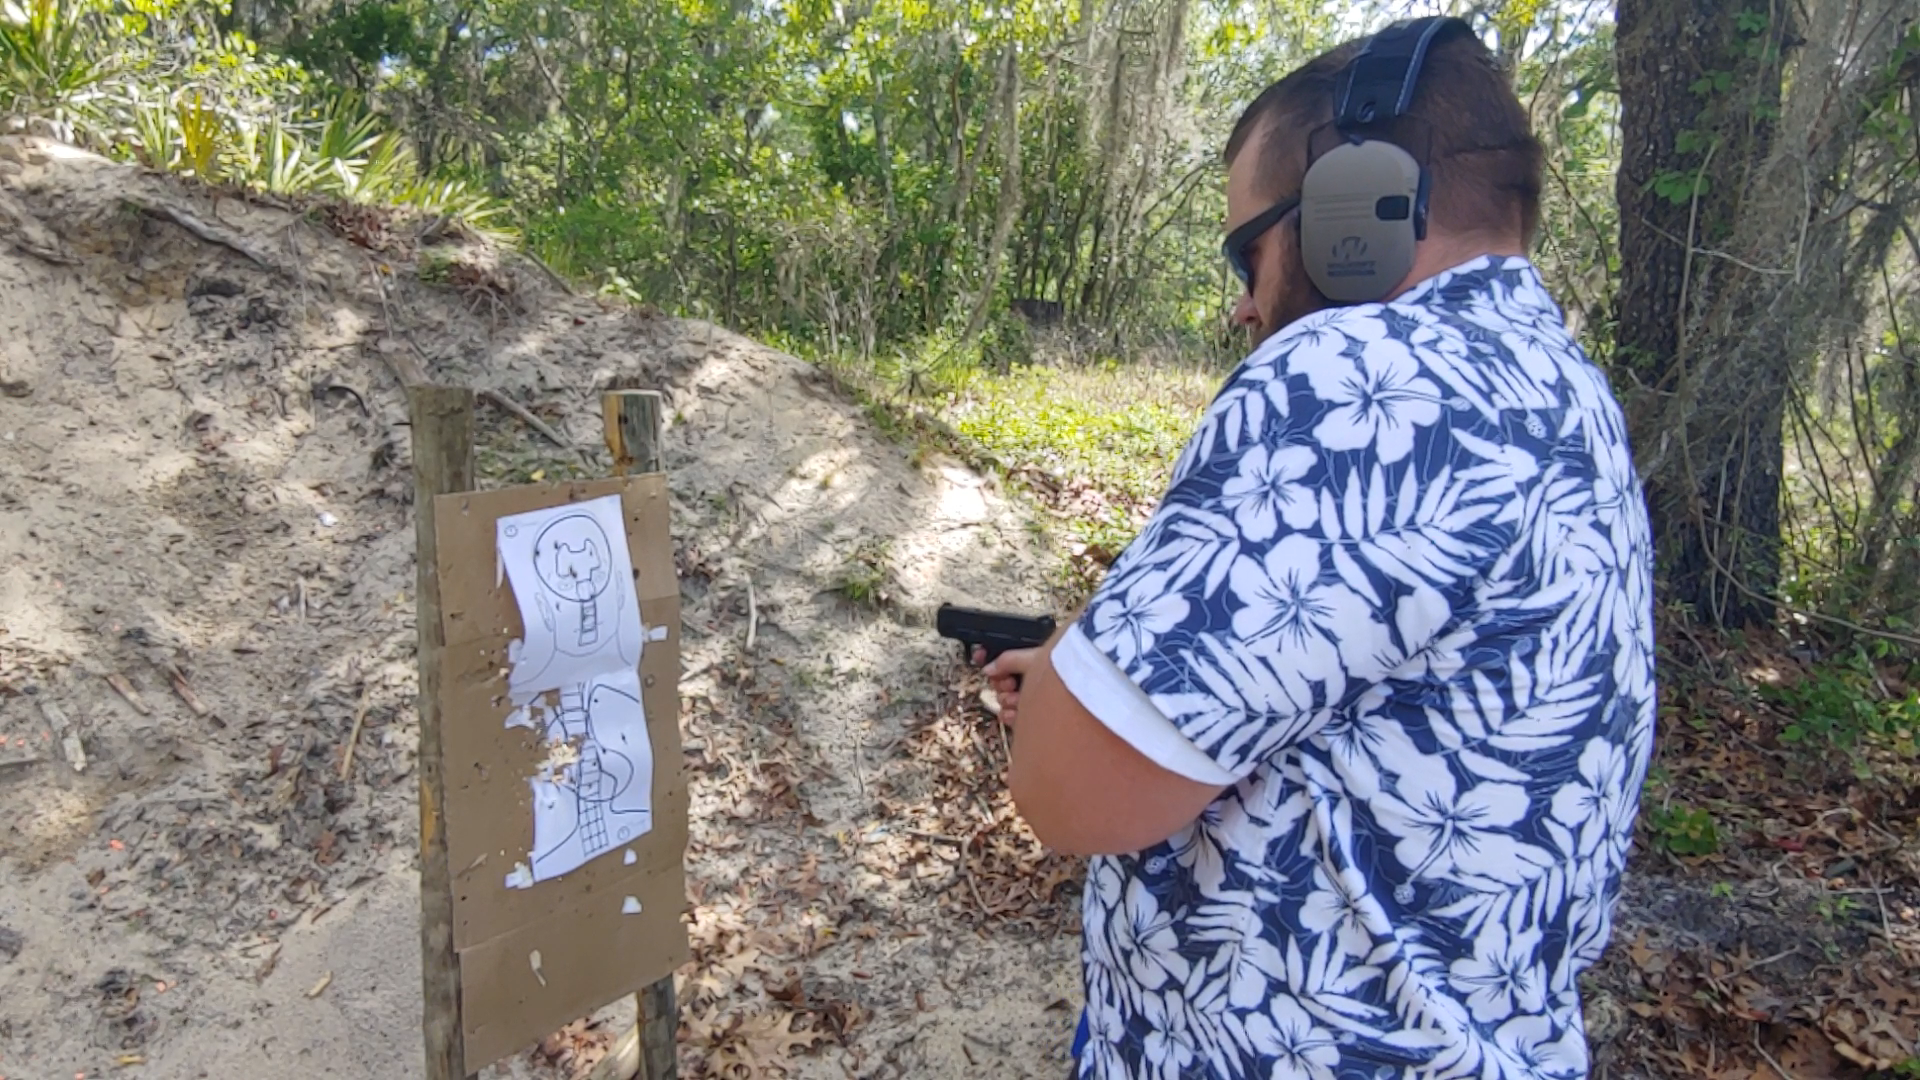 MPTC Concealed Carry Qualification, Drill, firearms training, concealed carry, Massachusetts, range day, Travis Pike, pistol qualification drill, concealed carry permit, Hybrid MT2 Holster, concealed carry holster, IWB, CrossBreed Holsters, OWB, timed drills, timed range drills, gun belt, responsibly armed, Springfield Hellcat